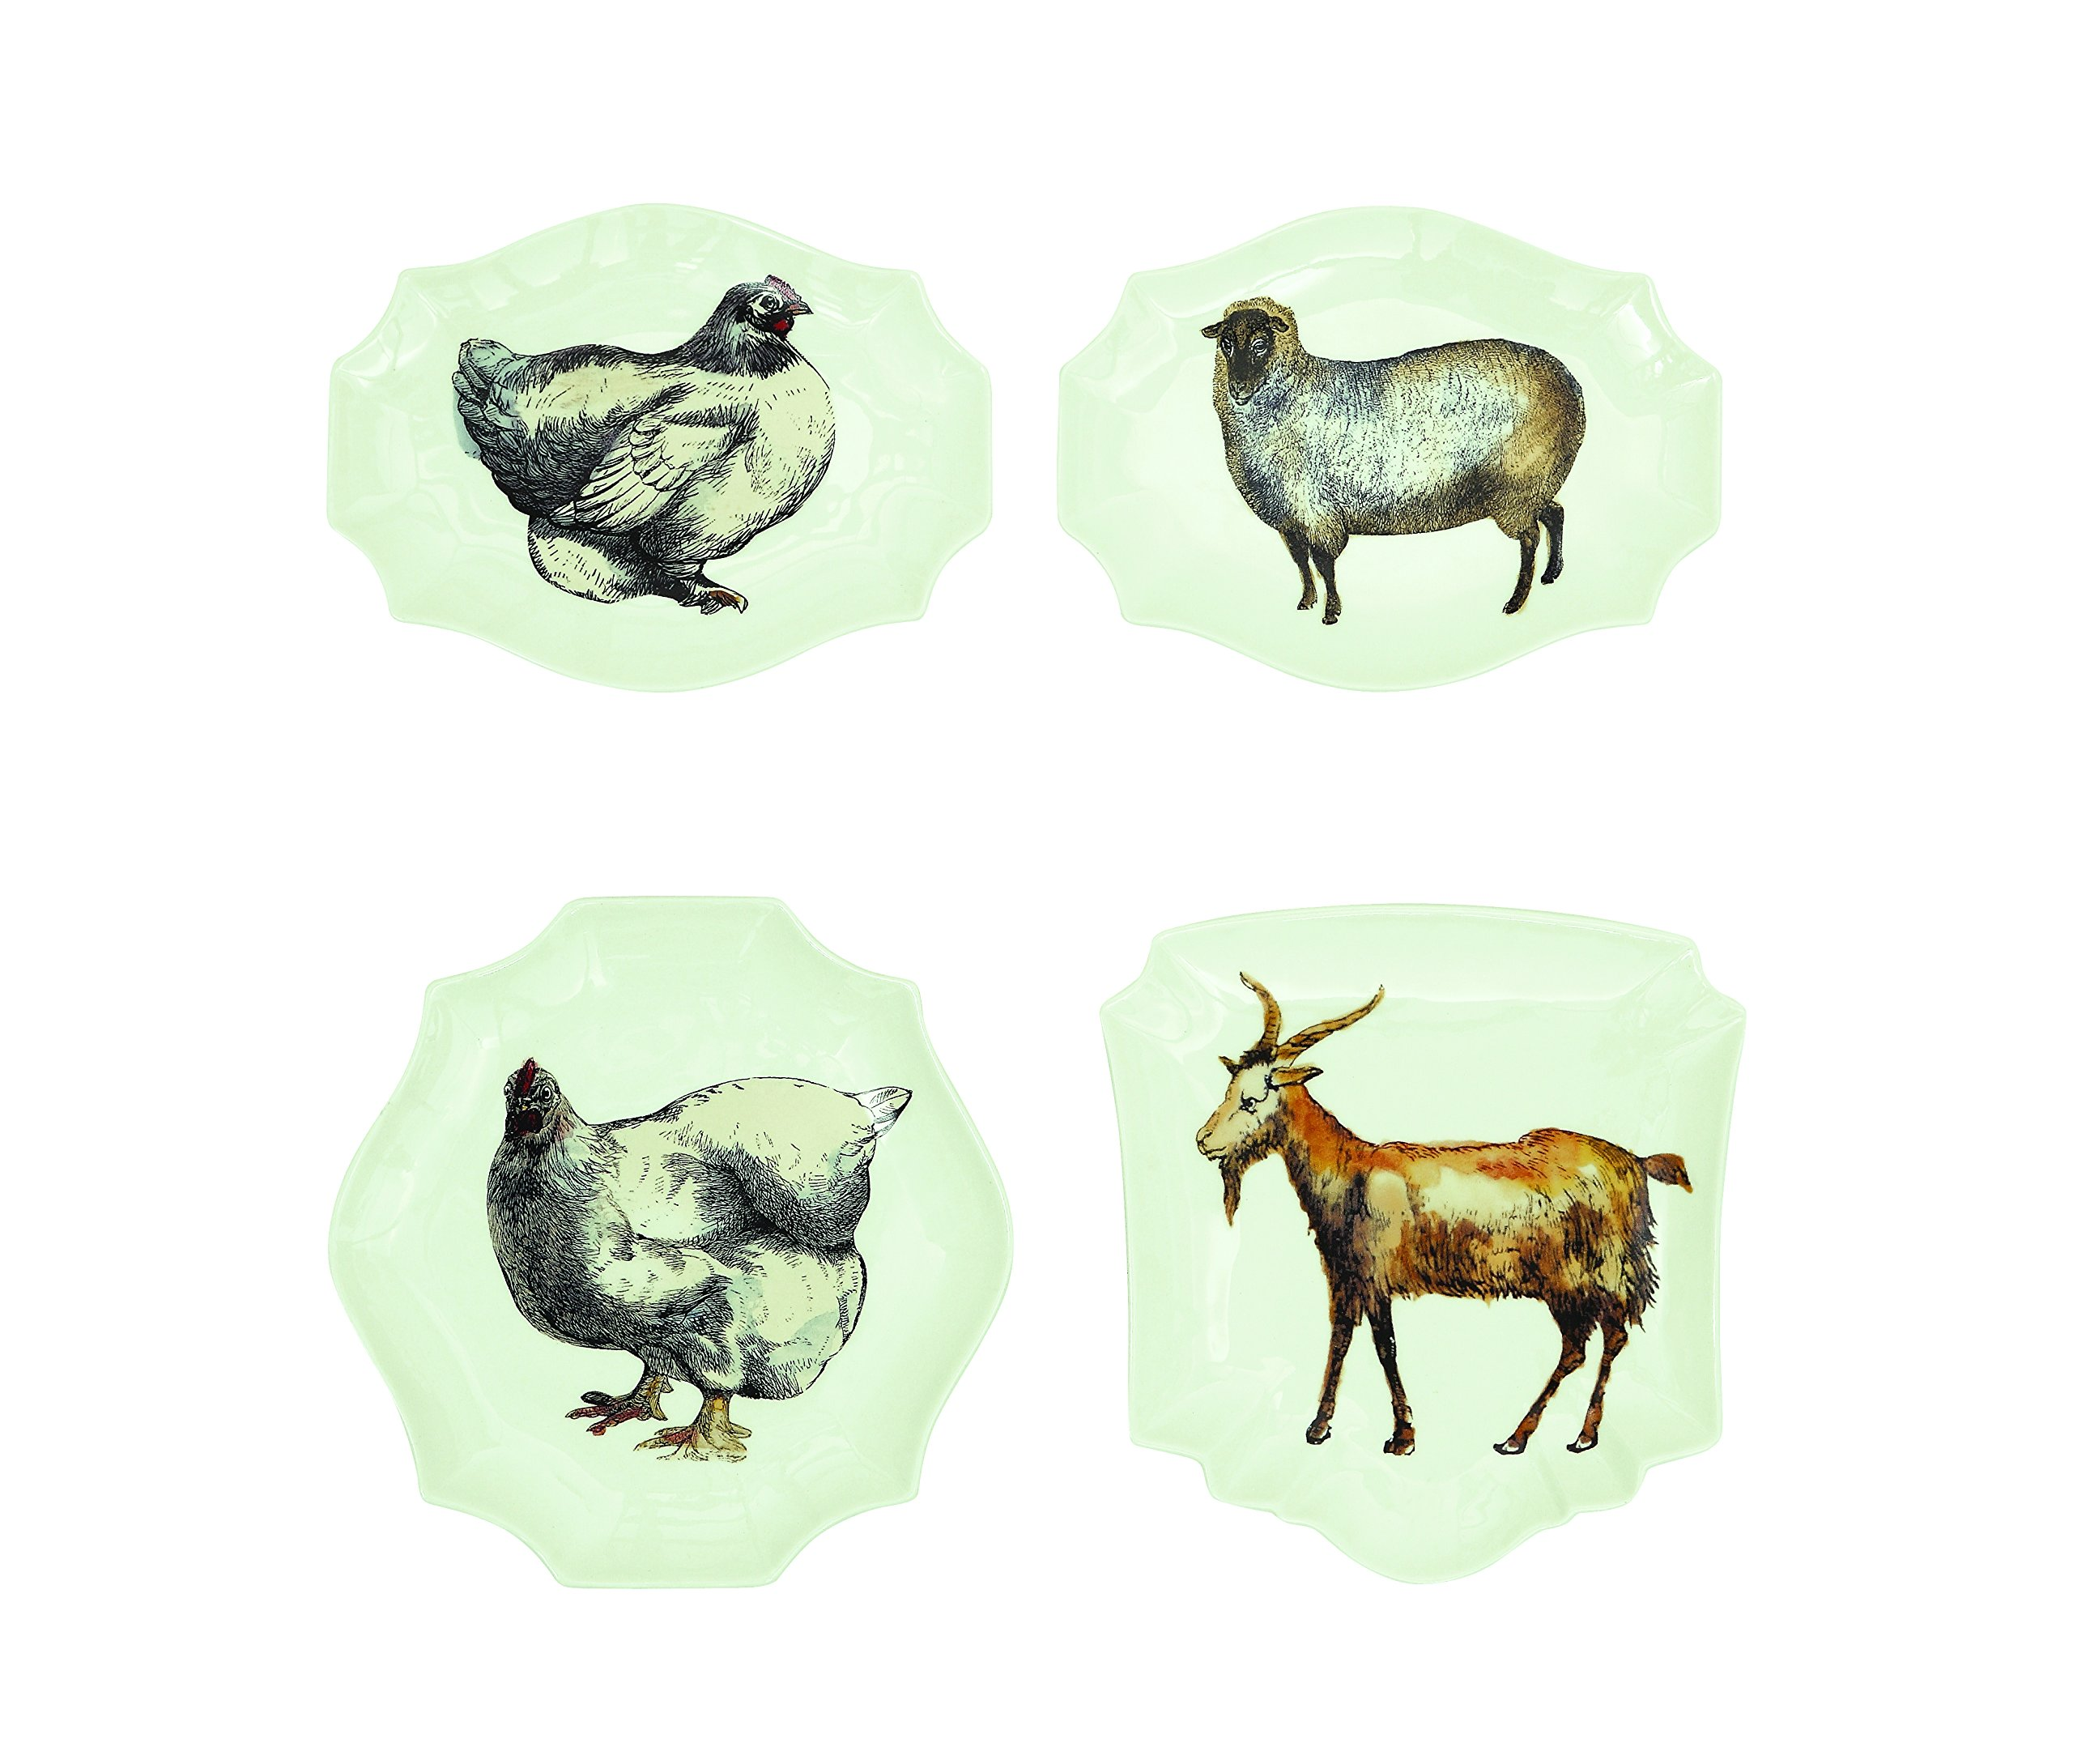 Creative Co-Op DA4192 Small Stoneware Plate Set with Animal Images, 8-Inch, Multicolor